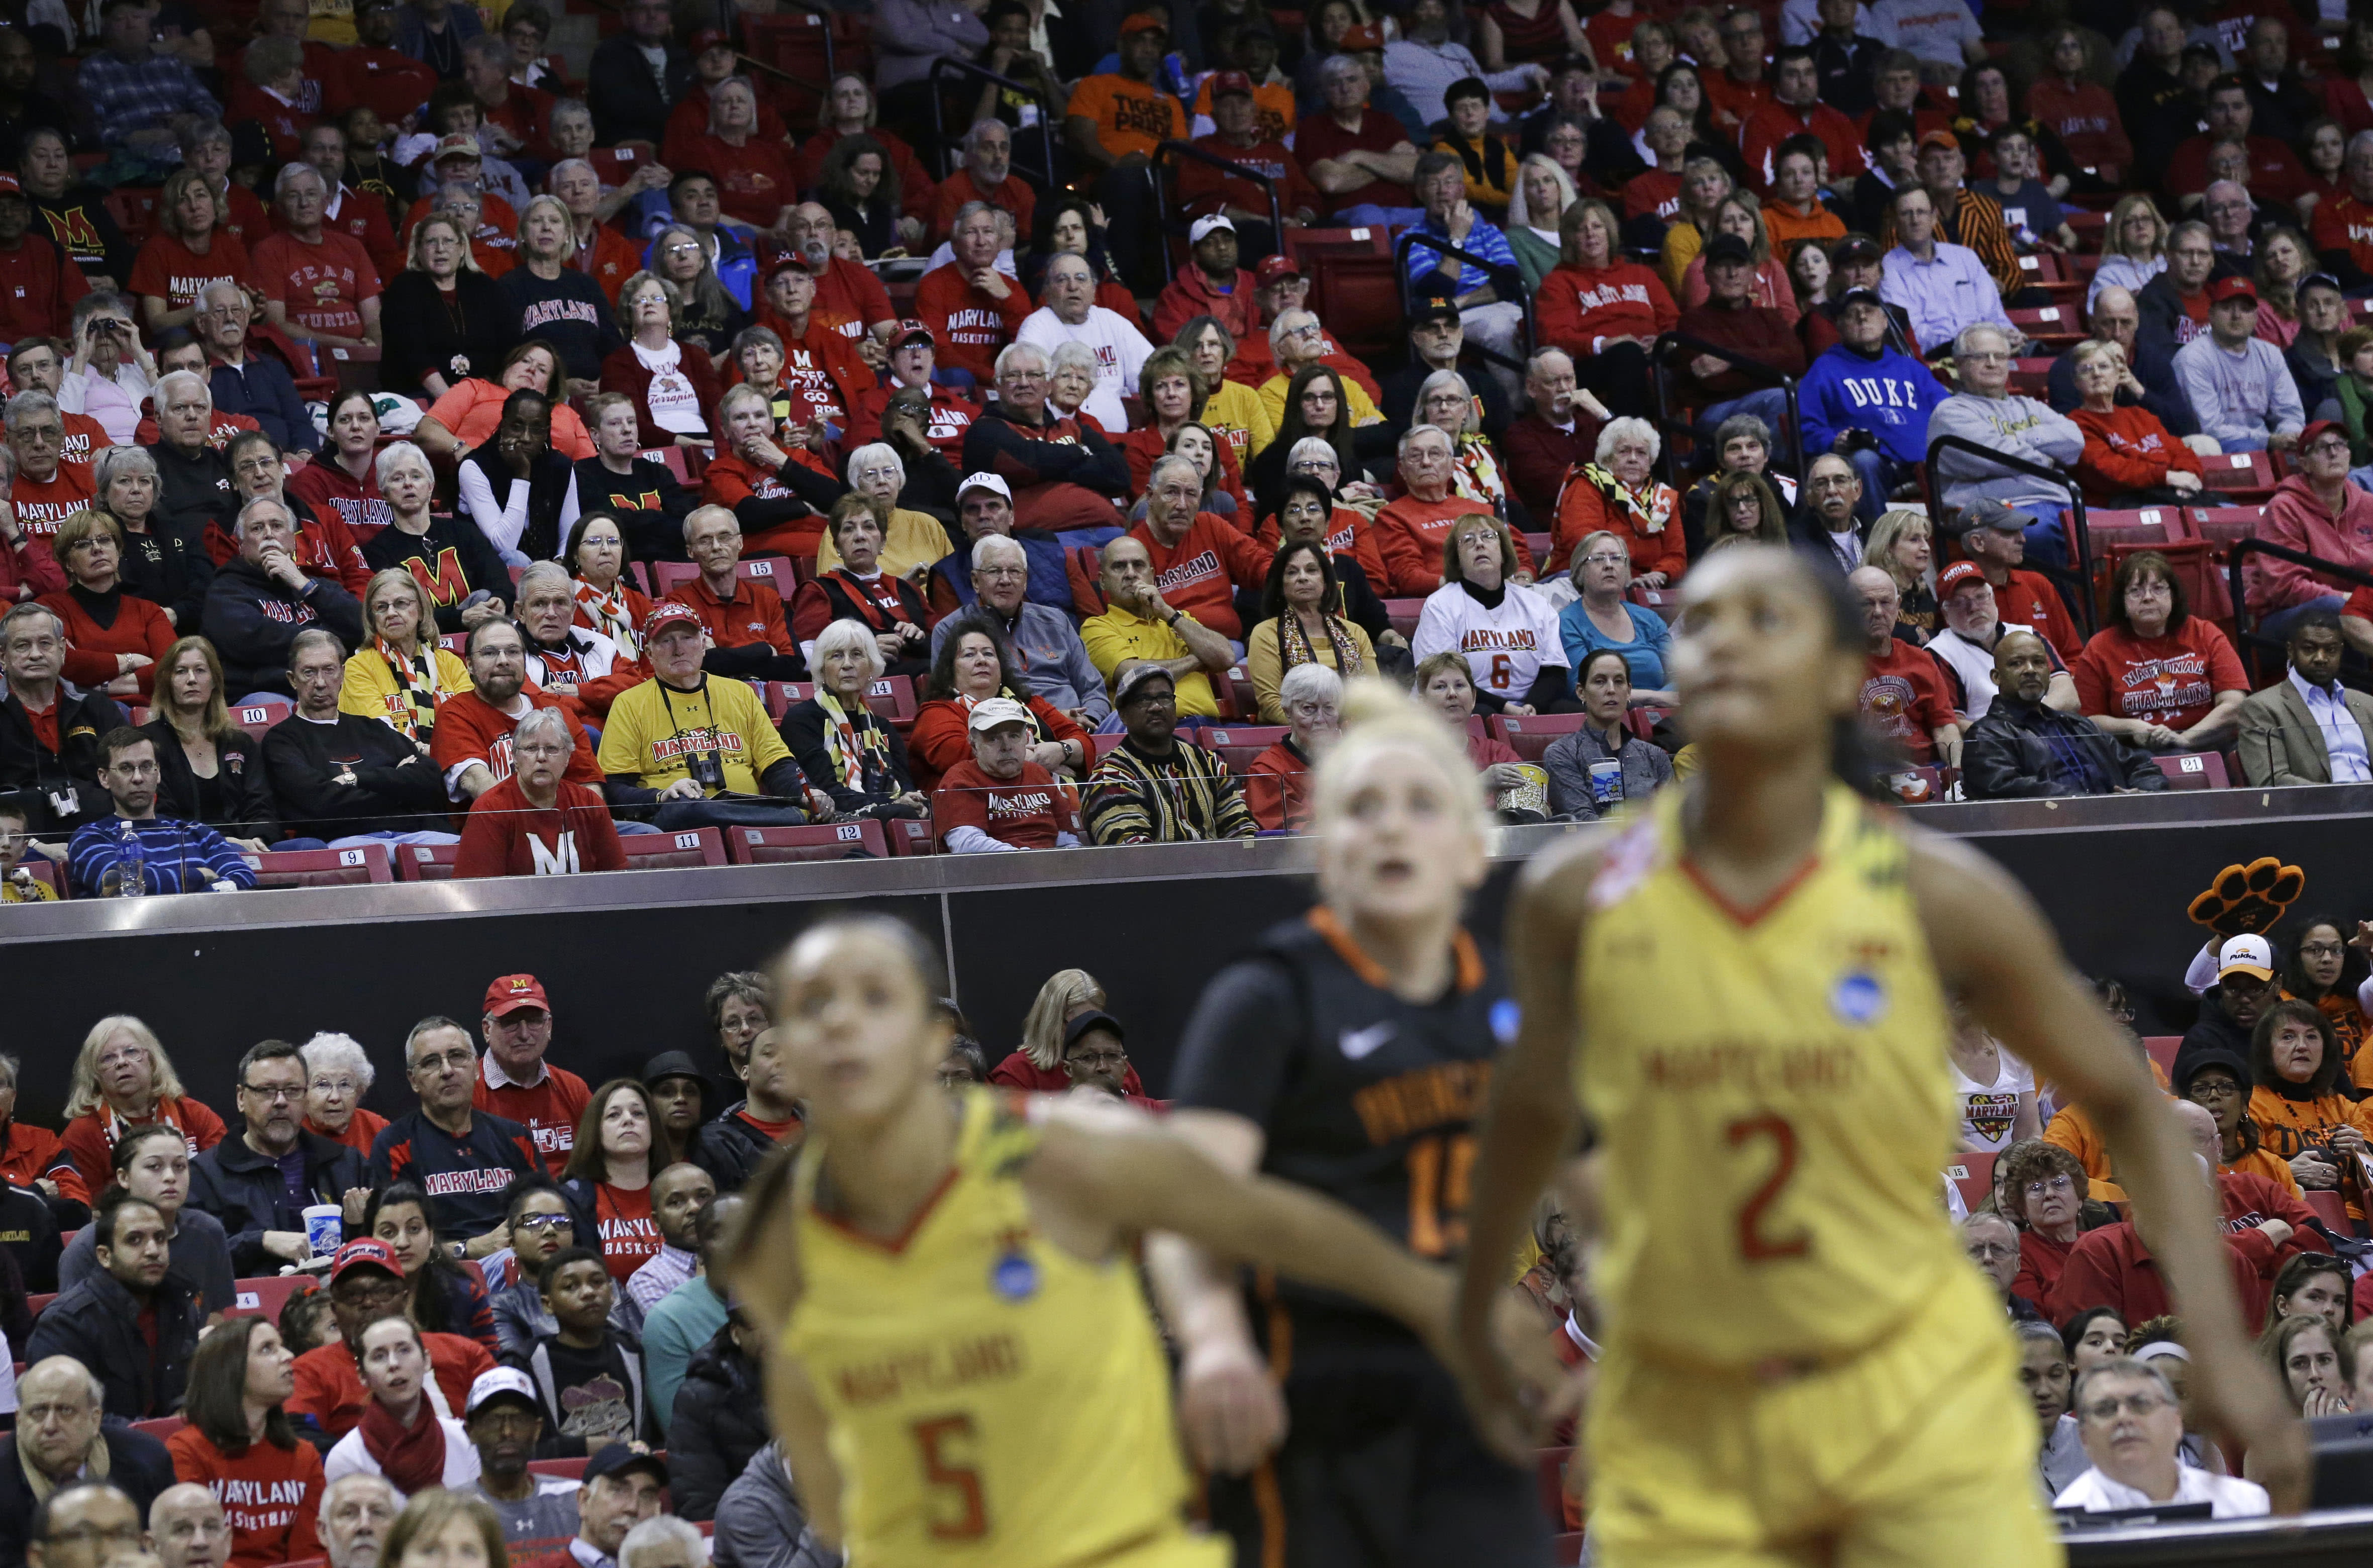 Women's NCAA Tournament attendance up in some locations